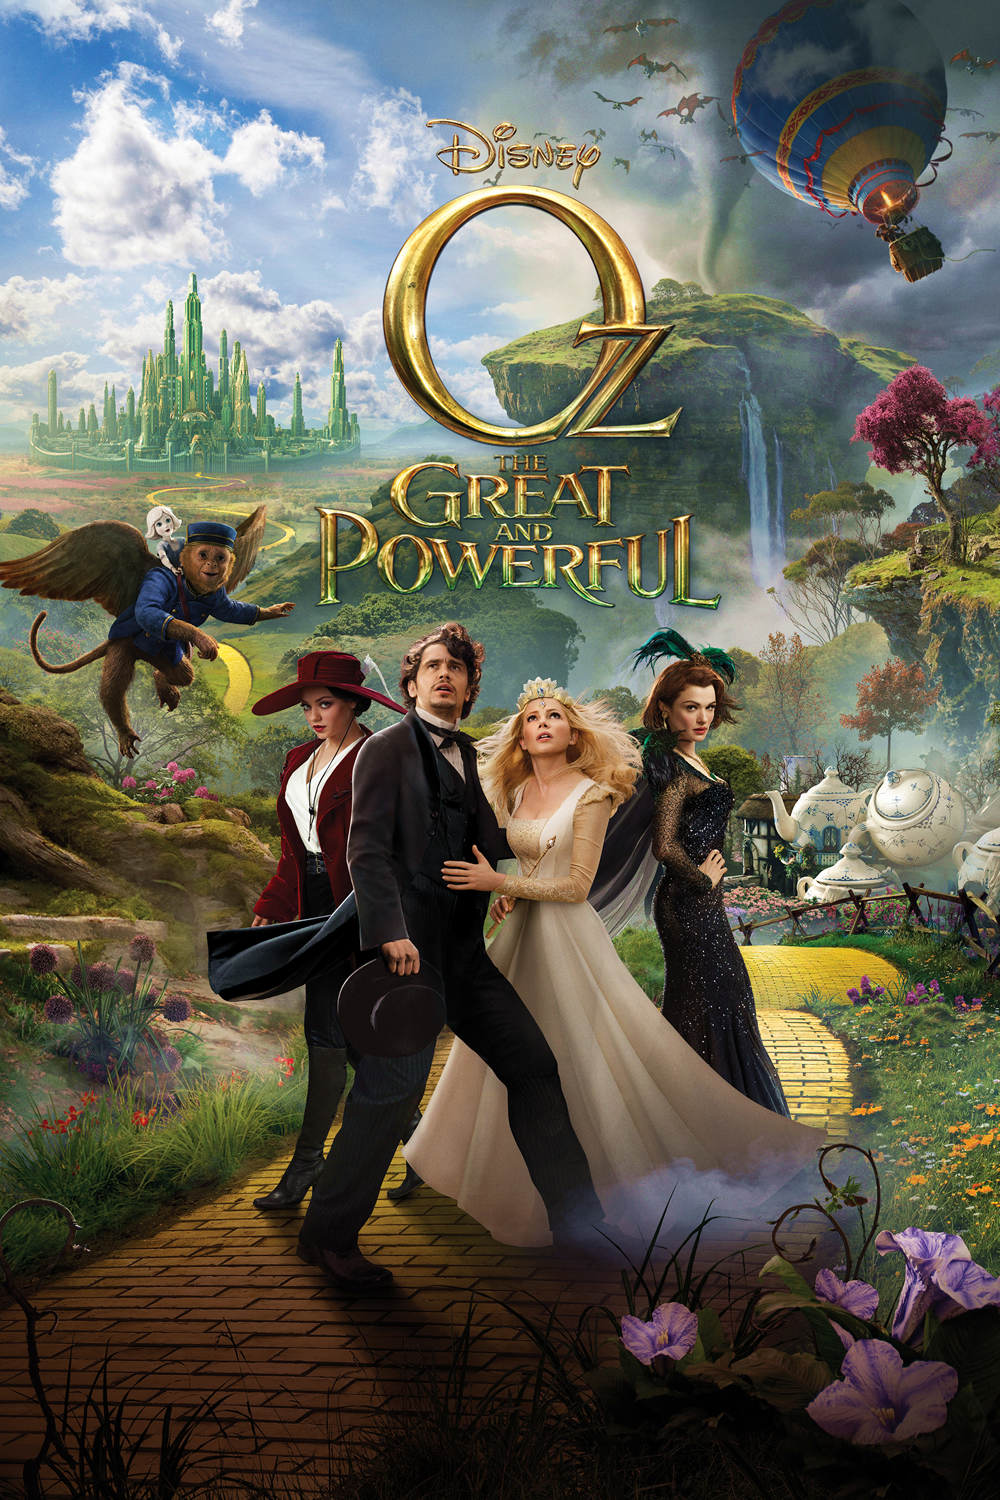 Oz the Great and Powerful | Imperial Cinema Oz The Great And Powerful Cast Oz